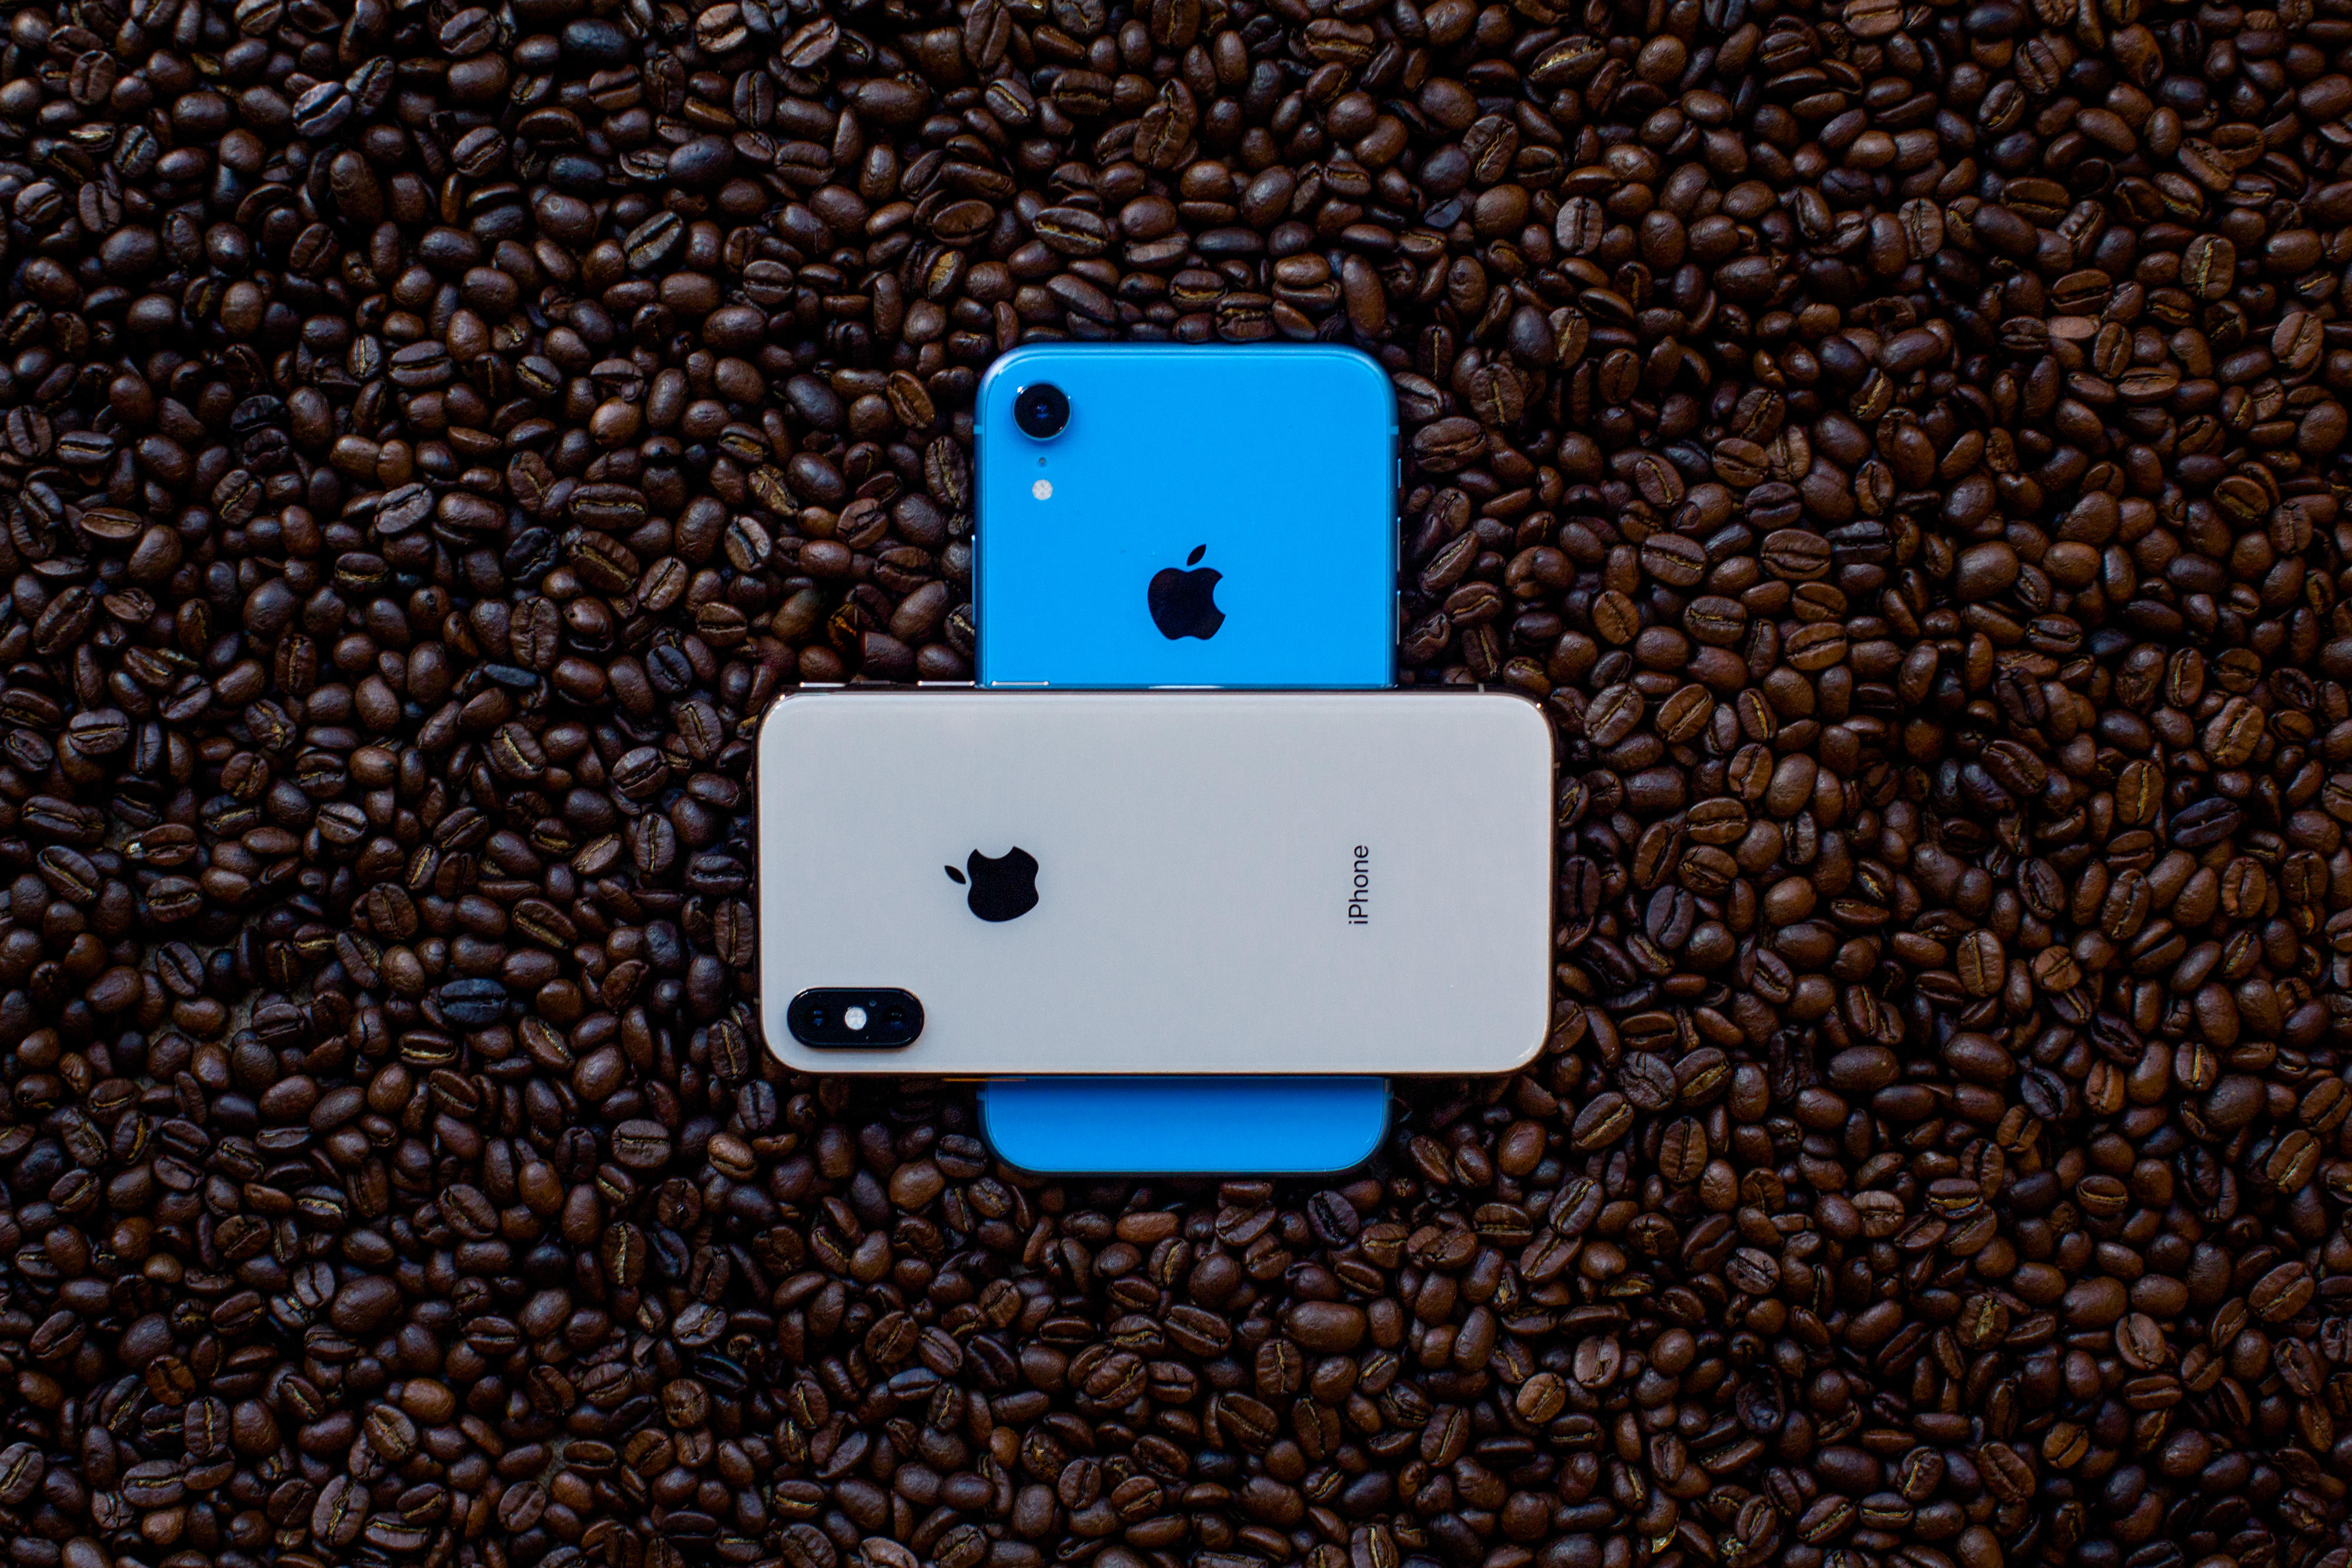 iphone-xs-iphone-xr-coffee-4